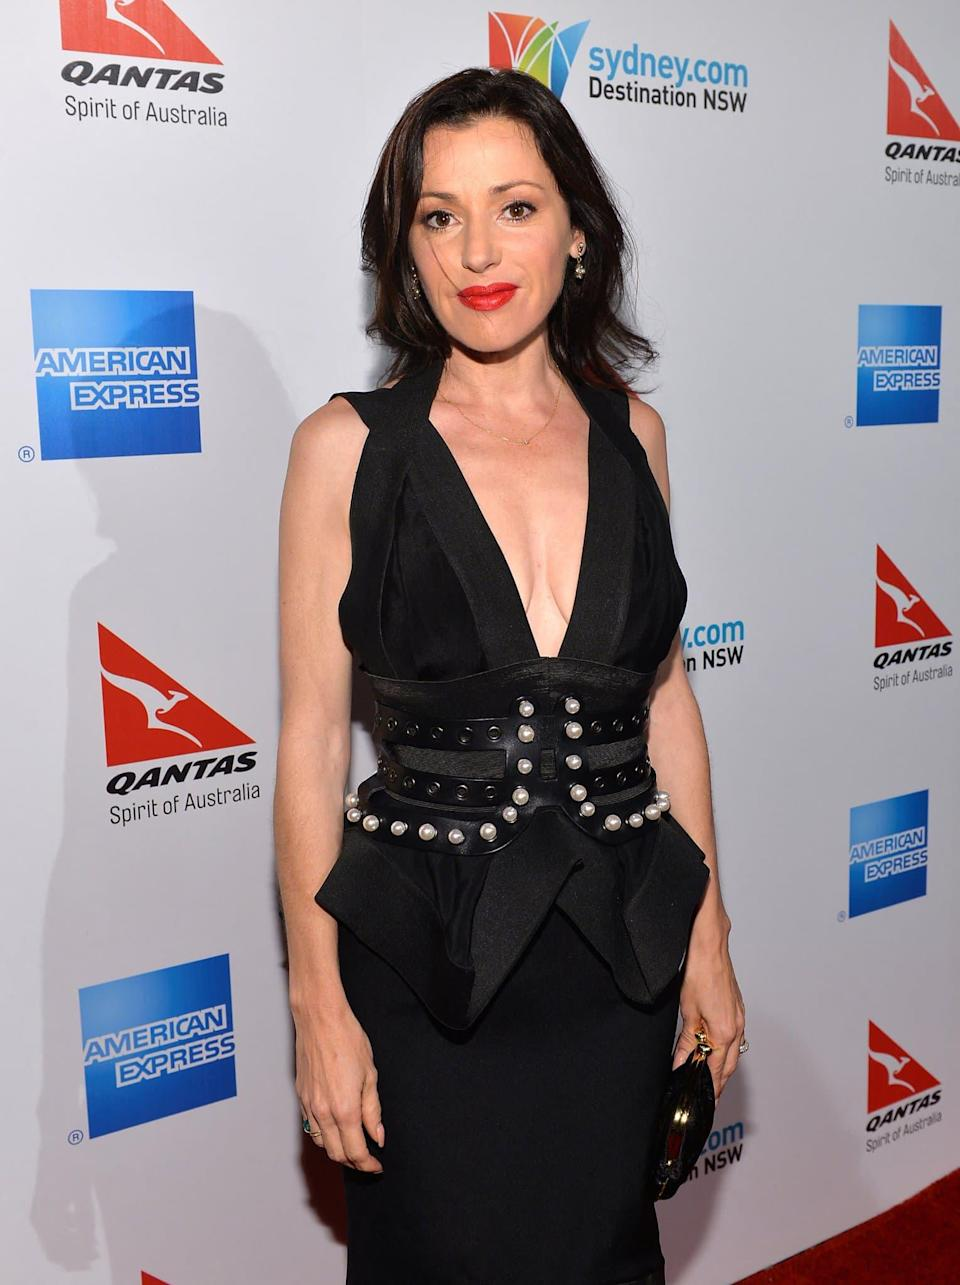 Tina Arena à Beverly Hills en 2014 - Alberto E. Rodriguez - Getty Images North America - Getty Images via AFP